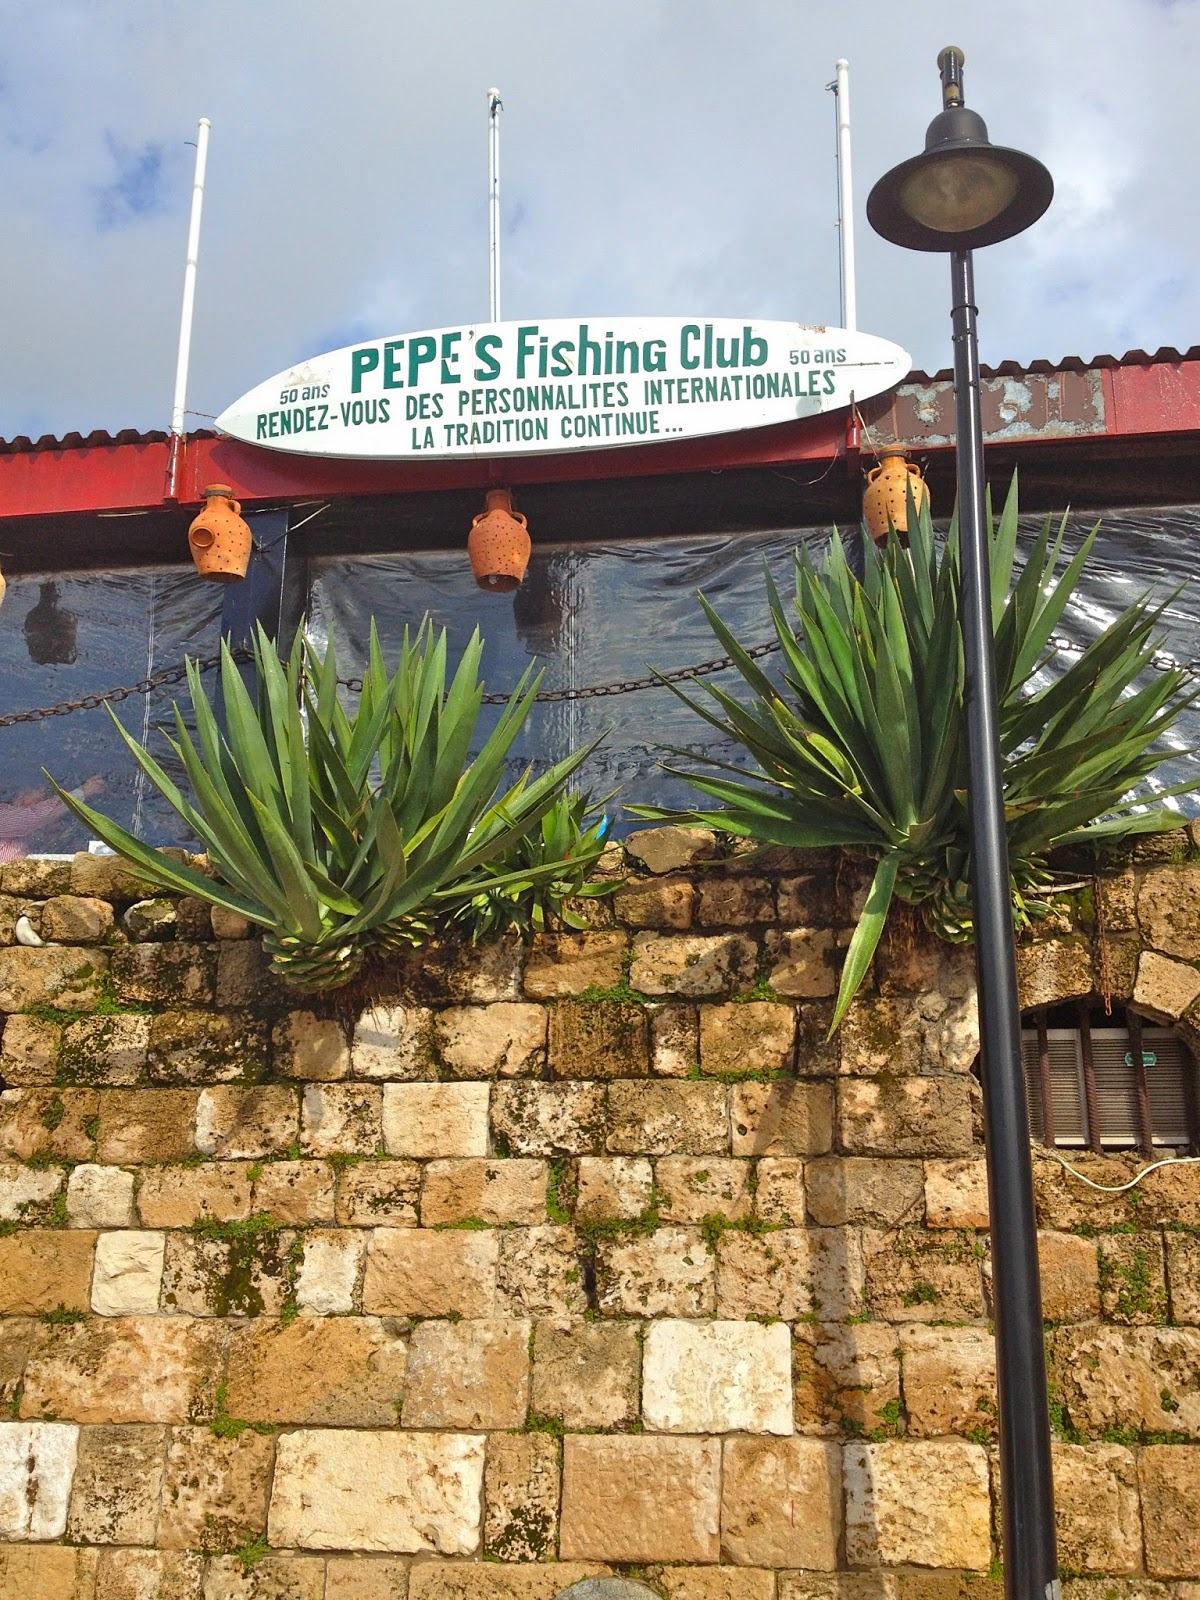 Picture of Pepe's Fishing Club in the old harbor of Byblos, Lebanon.